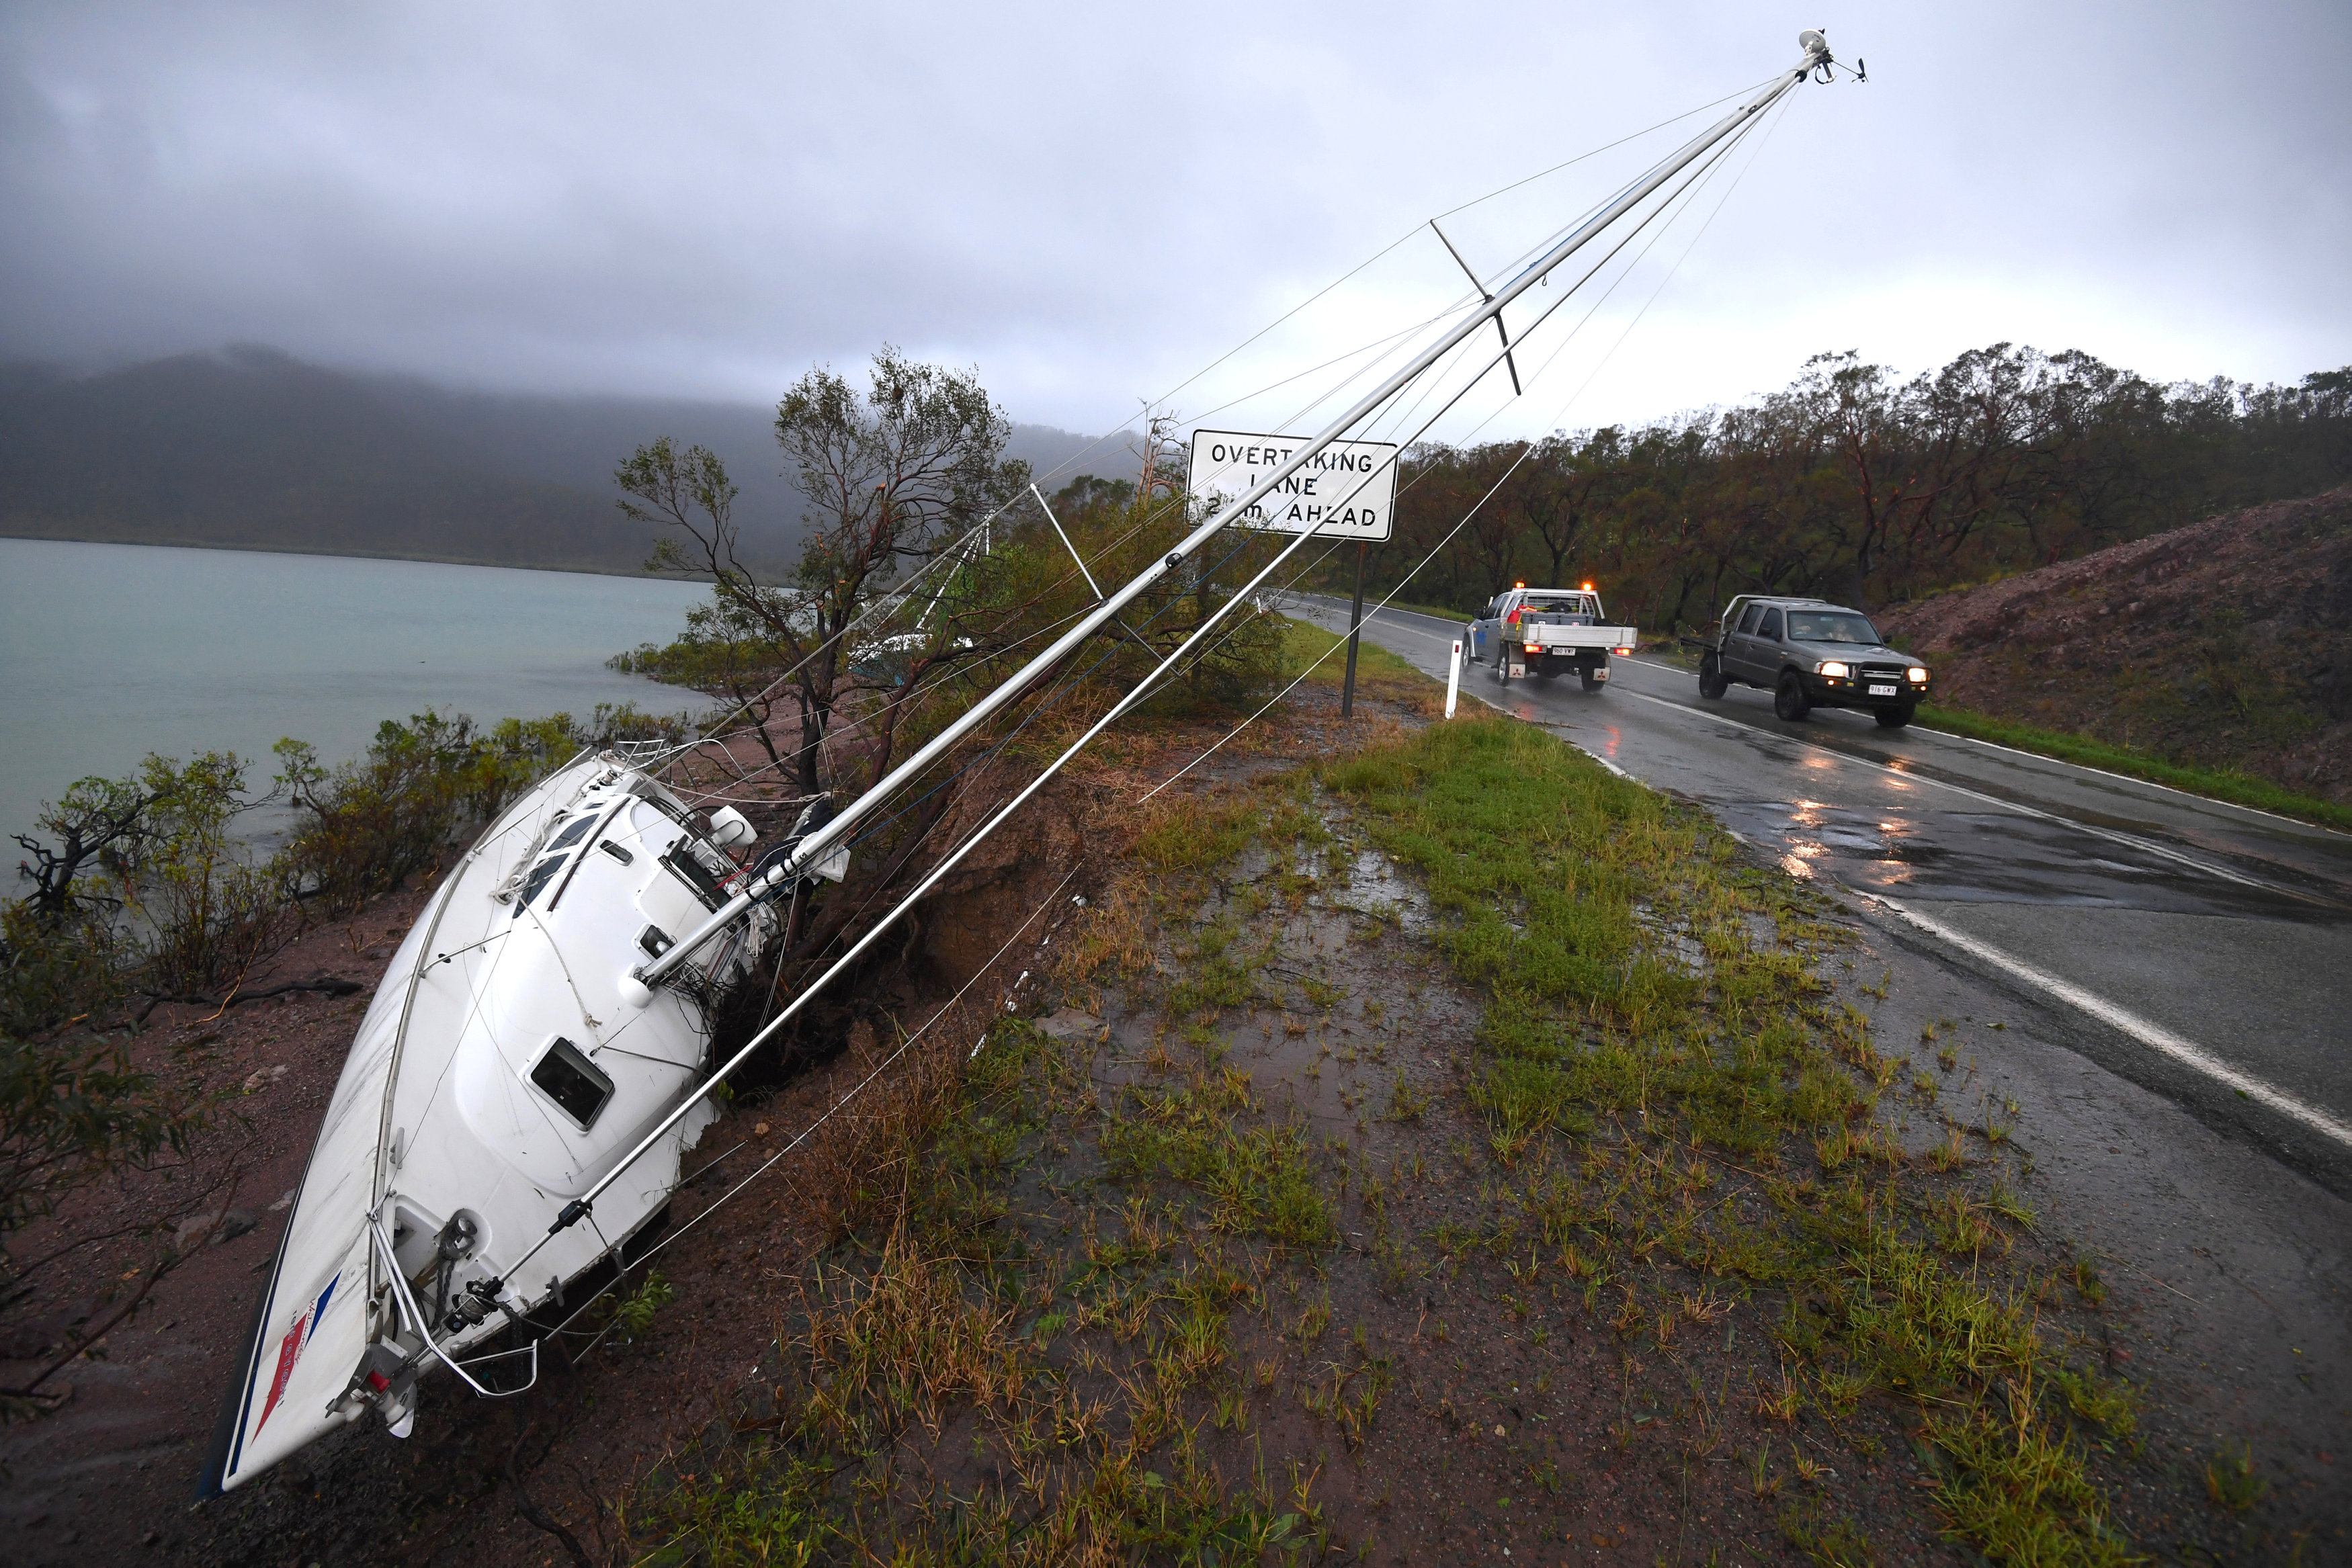 A yacht lies beside a road after Cyclone Debbie hit the northern Queensland town of Airlie Beach, located south of Townsville in Australia, March 29, 2017.   AAP/Dan Peled/via REUTERS